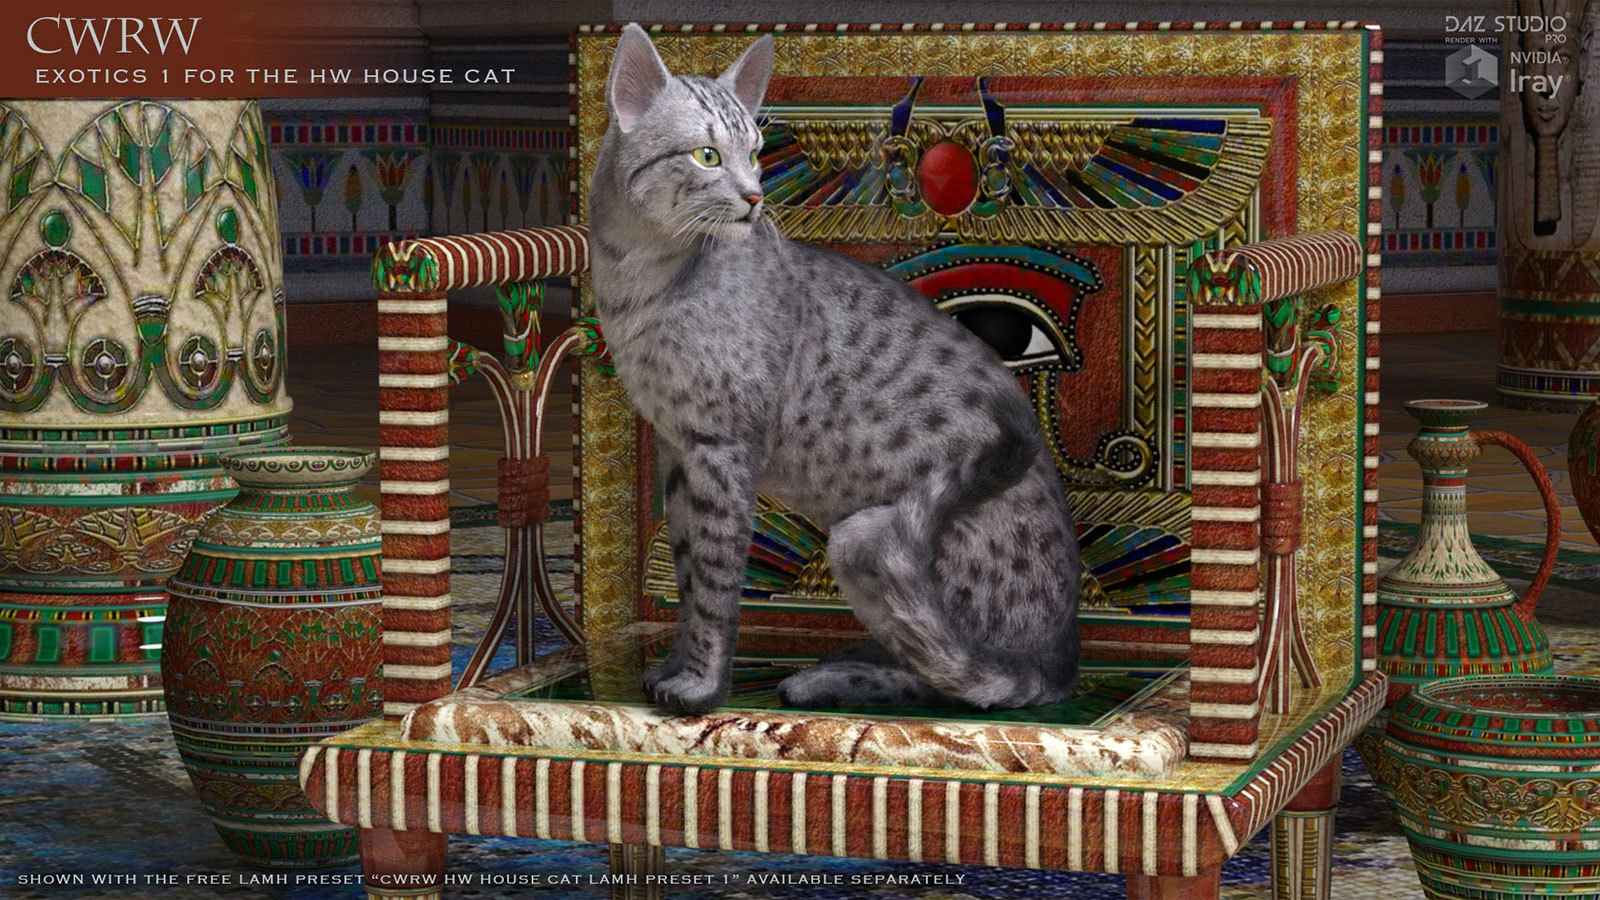 CWRW Exotics 1 for the HW House Cat by cwrw